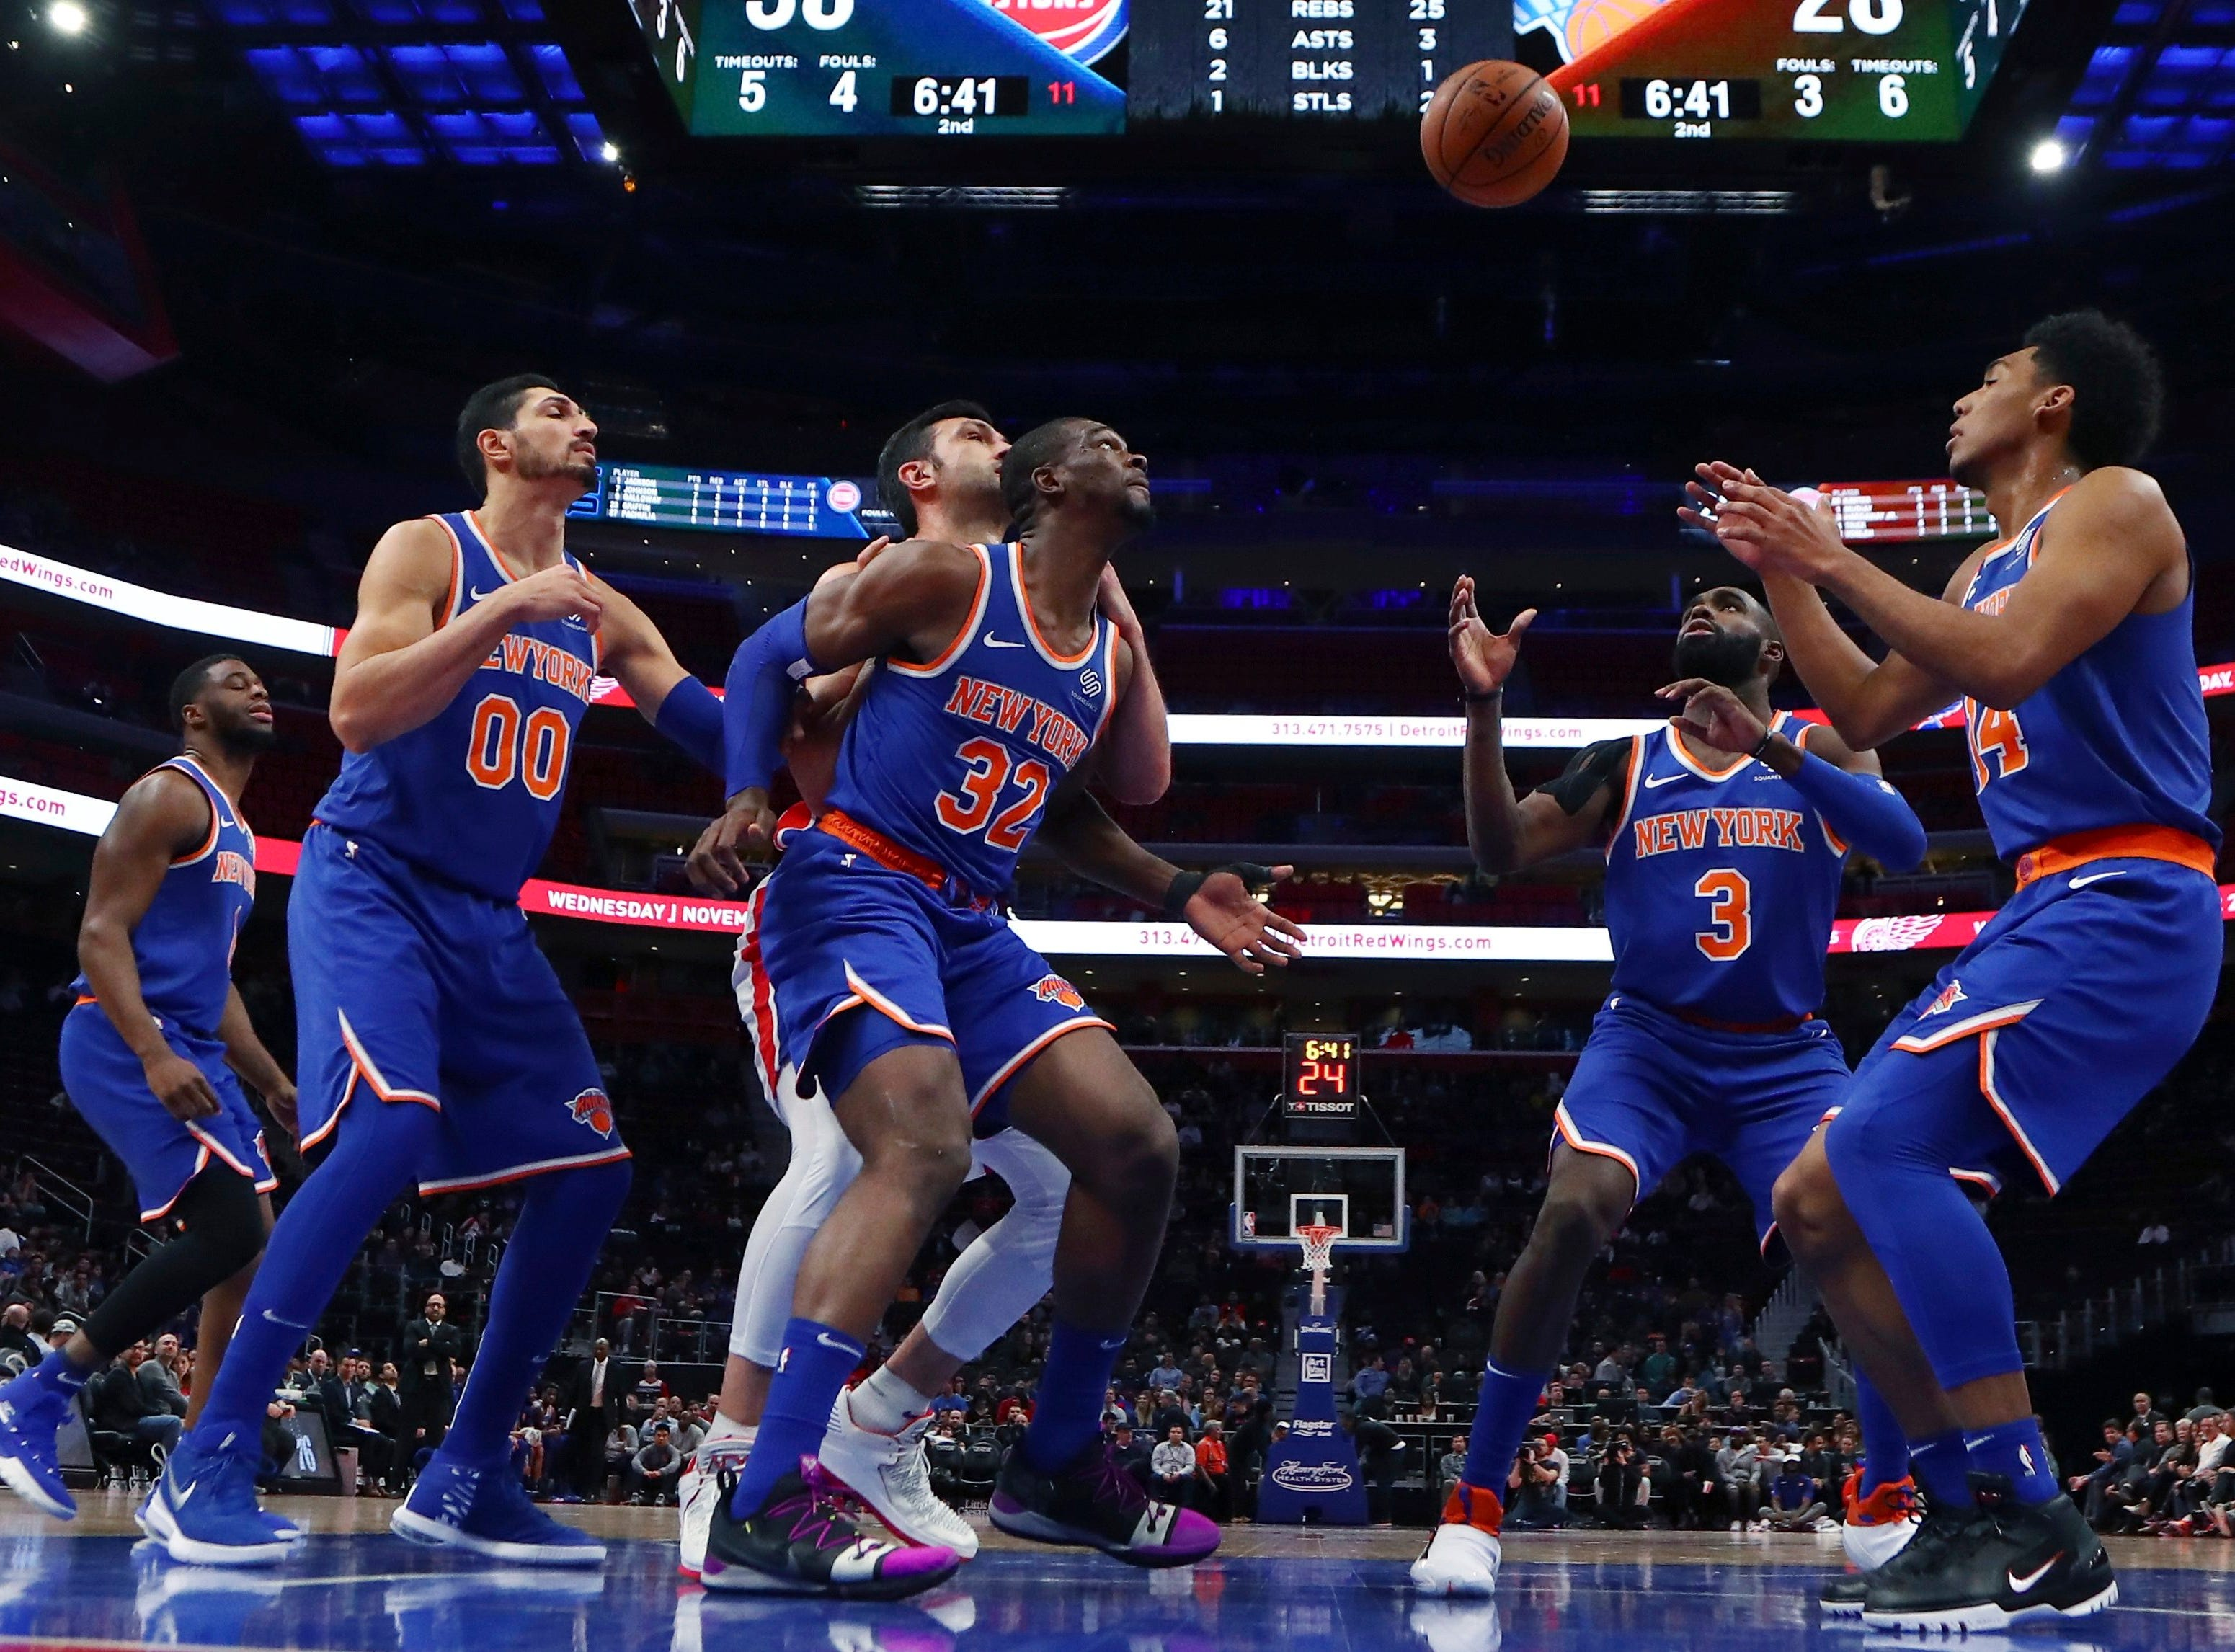 New York Knicks center Enes Kanter (00), forward Noah Vonleh (32) and guards Tim Hardaway Jr. (3) and Allonzo Trier (14) wait on the ball after the Detroit Pistons scoredduring the first half of an NBA basketball game, Tuesday, Nov. 27, 2018, in Detroit.